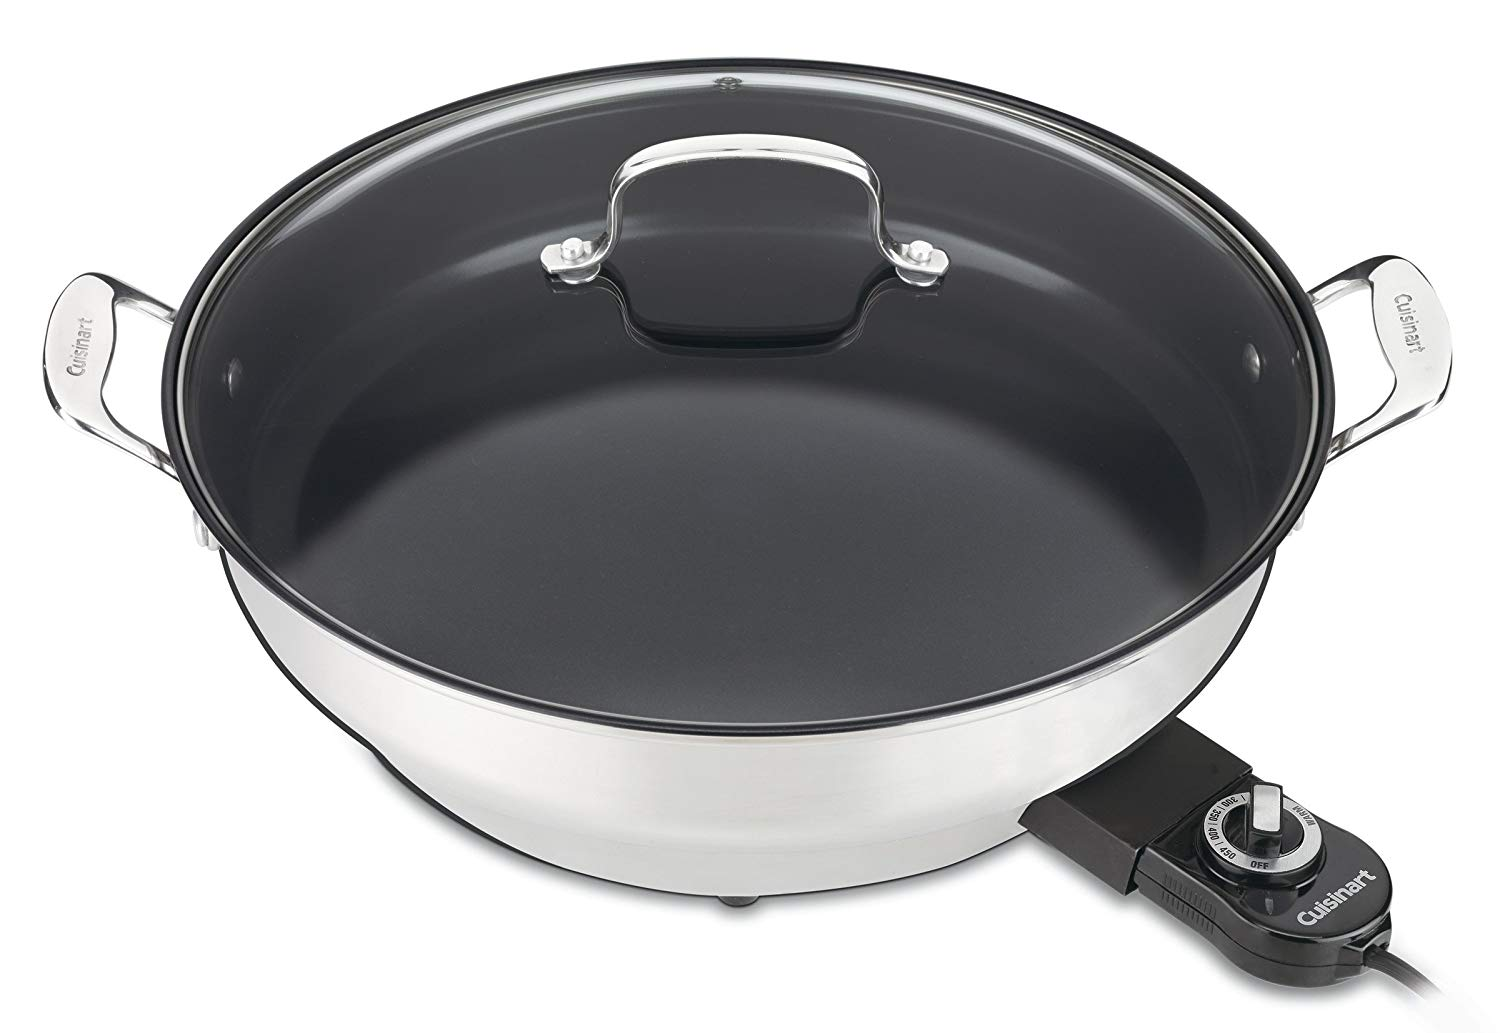 10 Best Electric Skillets of 2019 | Reviews 11